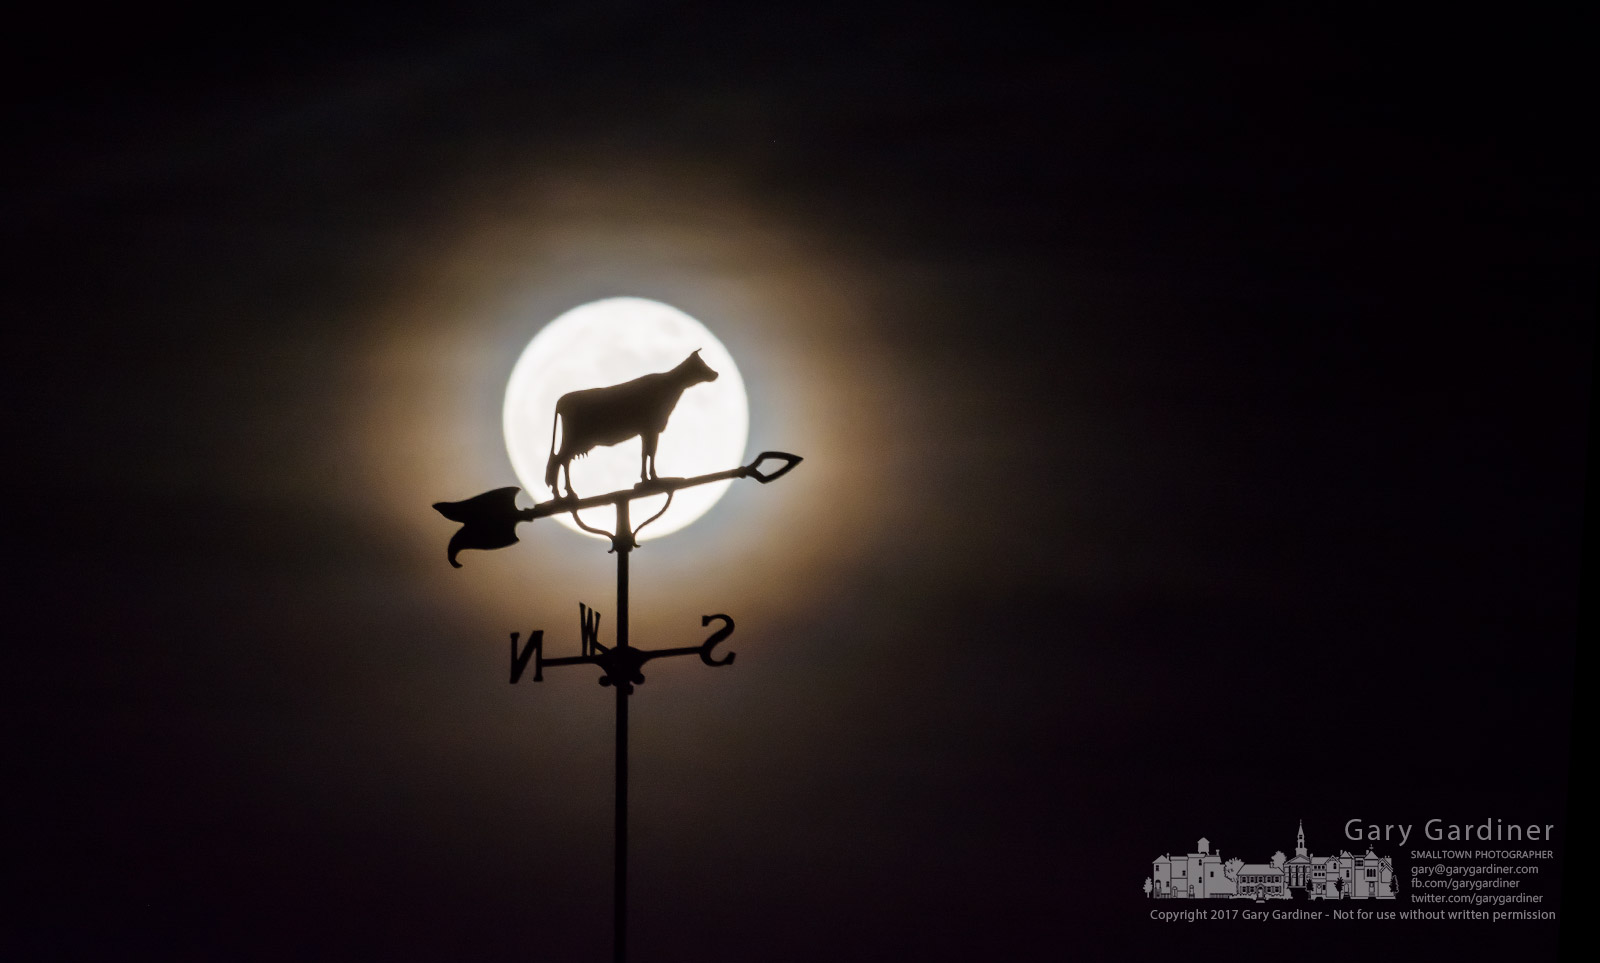 The bovine weather vane at the top of US Bank building in Uptown Westerville is silhouetted against the full moon shining through a thin cloud layer Sunday night. My Final Photo for Dec. 3, 2017.